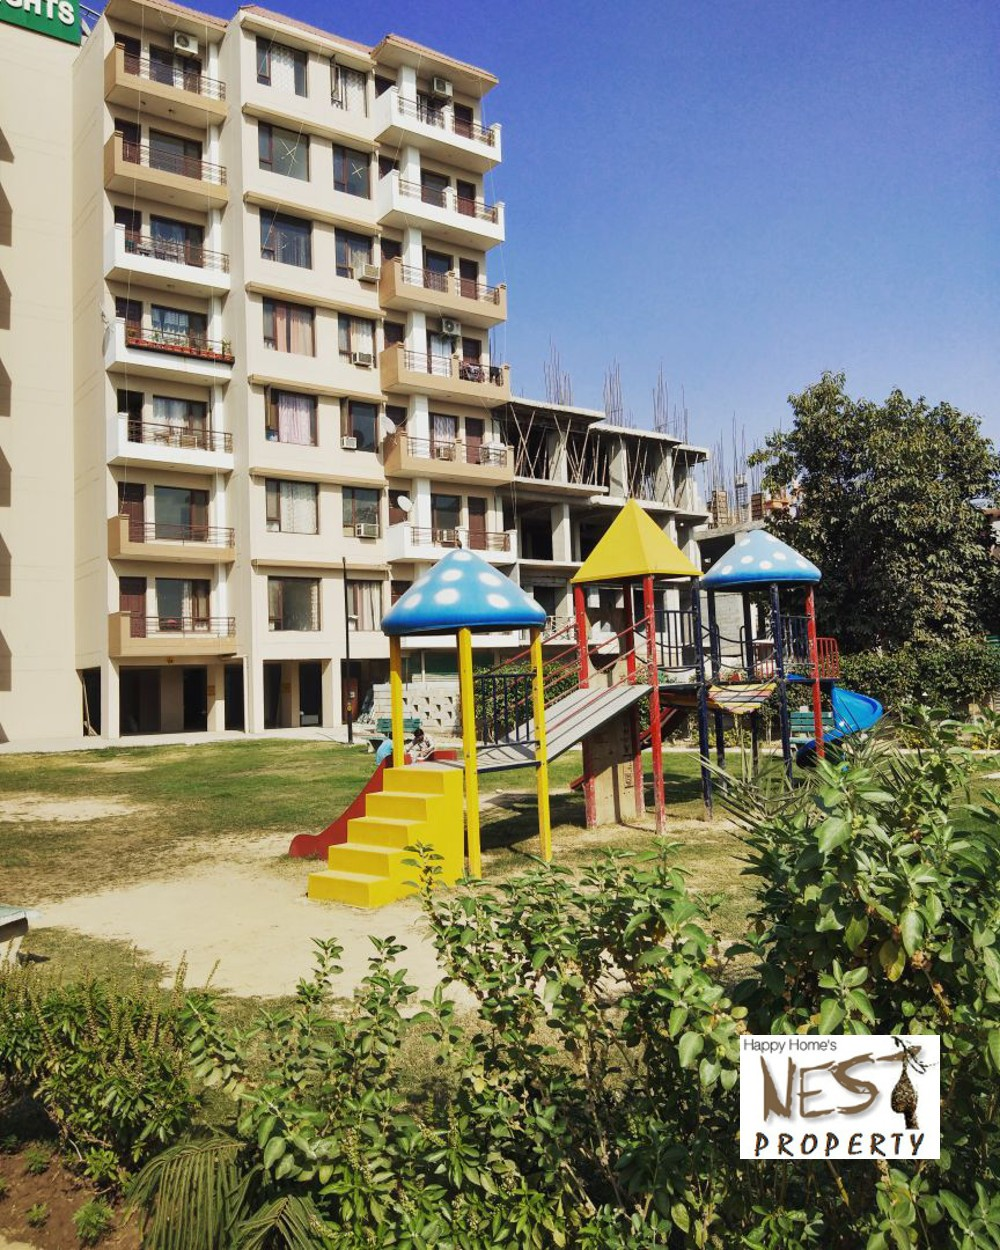 3 Bhk Flats in Mohali Ready To Move At Josan Heights in Shivalik City Mohali-Kharar Call-9888775612, 9888777712